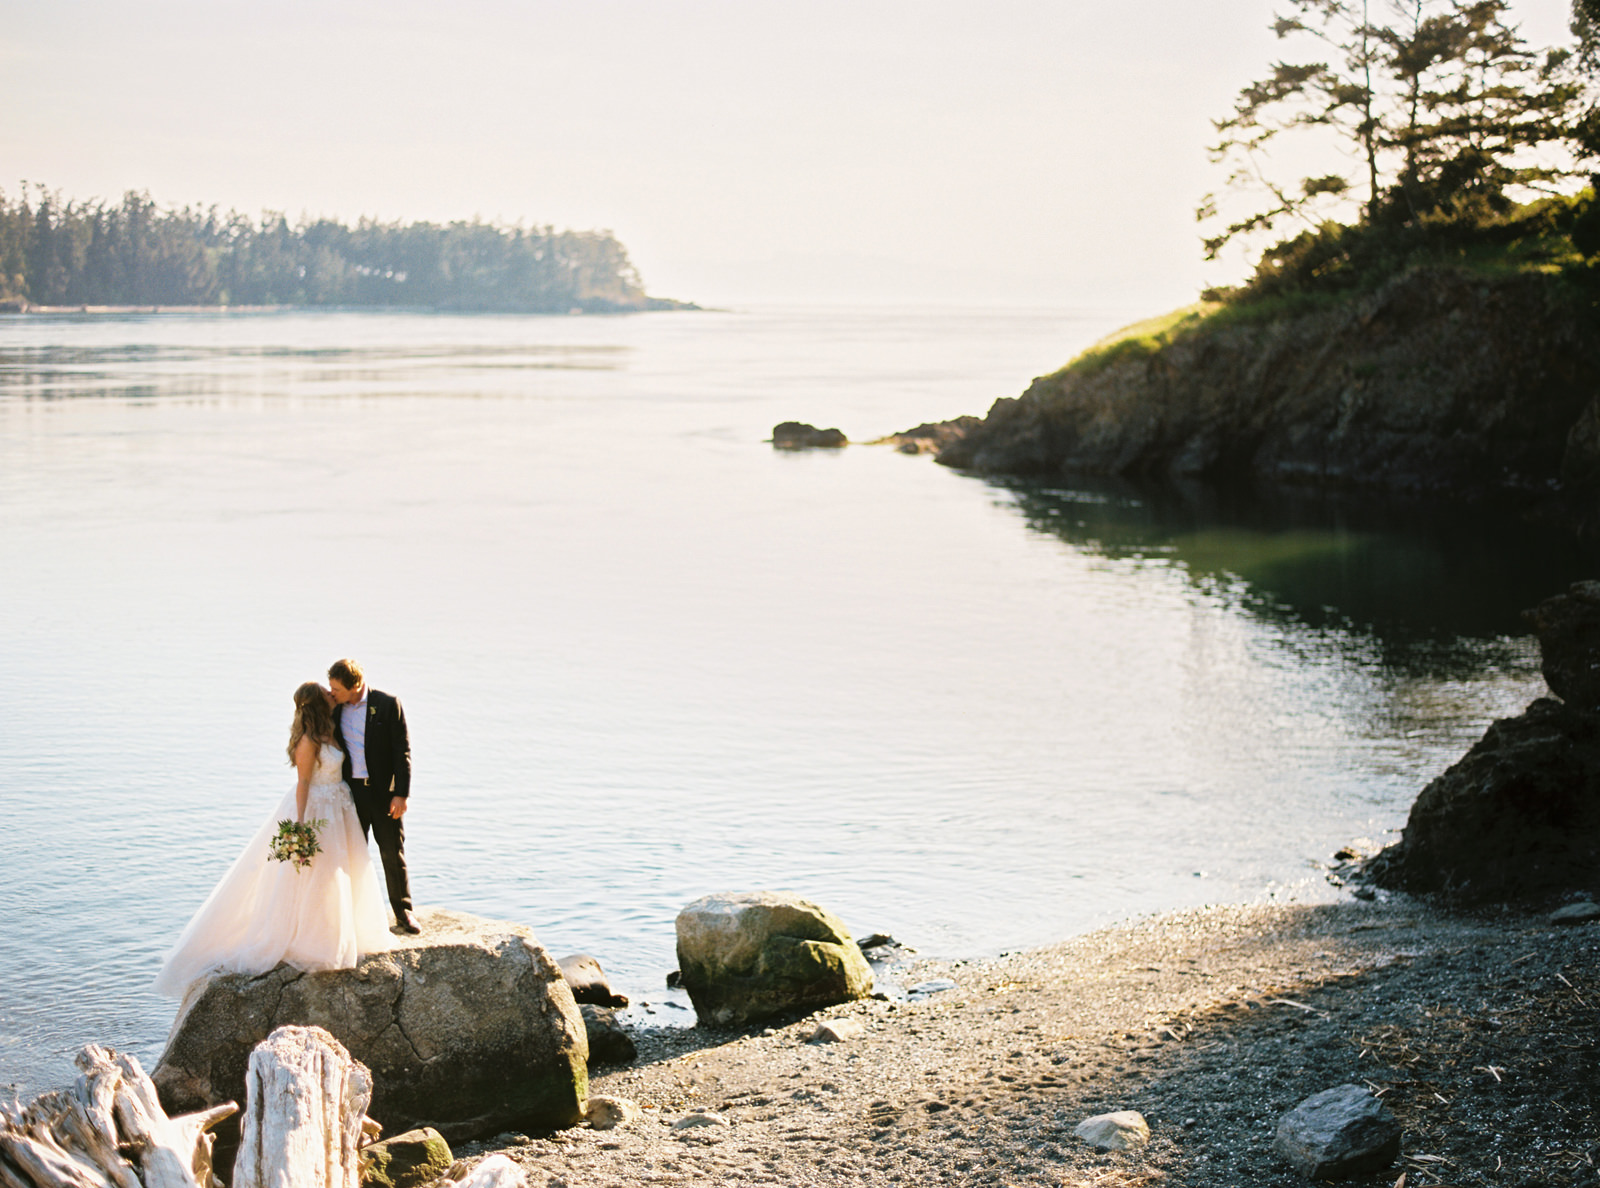 202-deception-pass-elopement-photo-by-washington-fine-art-film-photographer.jpg